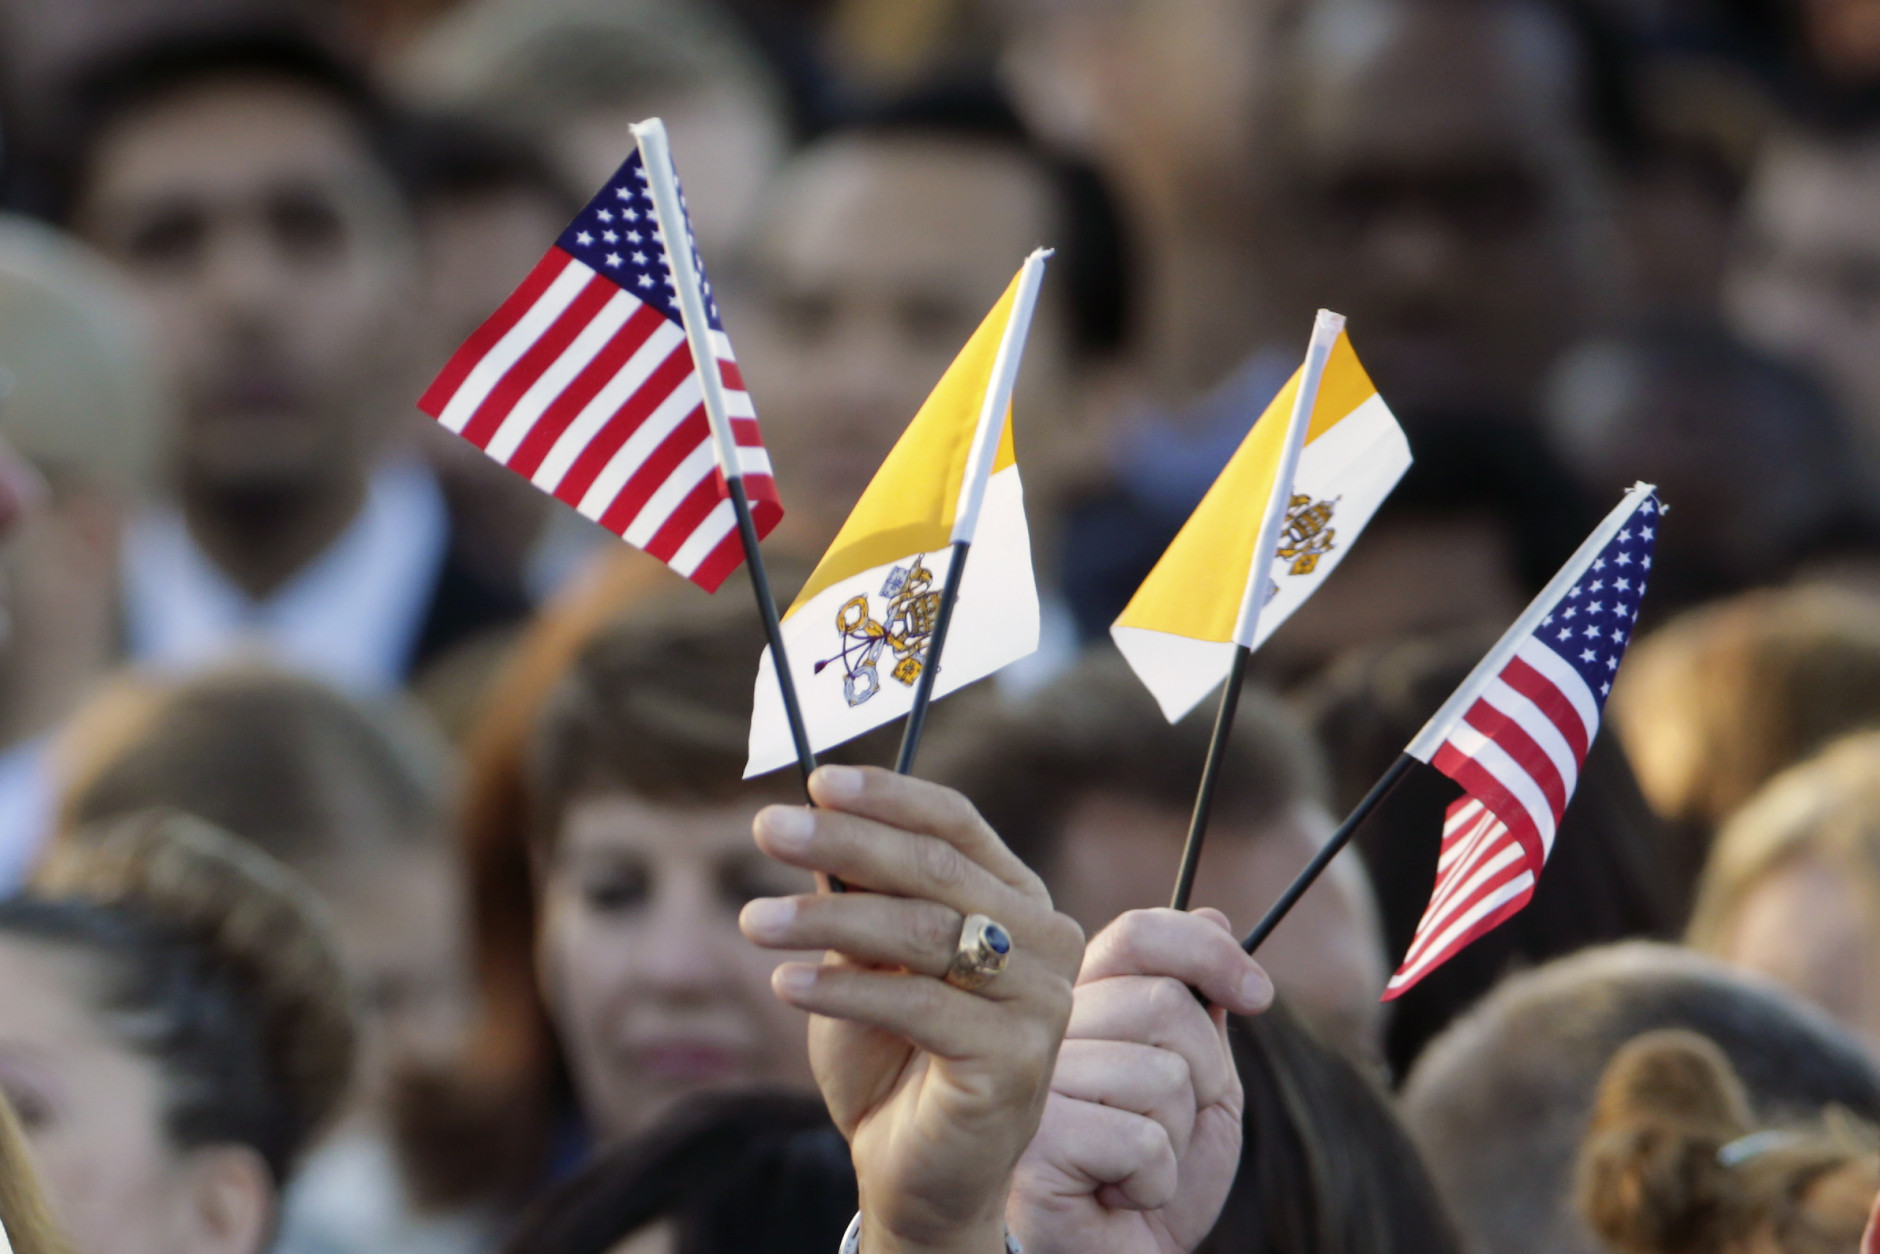 Spectators hoping for a glimpse of Pope Francis waves Papal and U.S. Flags on the South Lawn of the White House in Washington, Wednesday, Sept. 23, 2015, before the official state arrival ceremony where President Barack Obama will welcome the pope. (AP Photo/Pablo Martinez Monsivais)